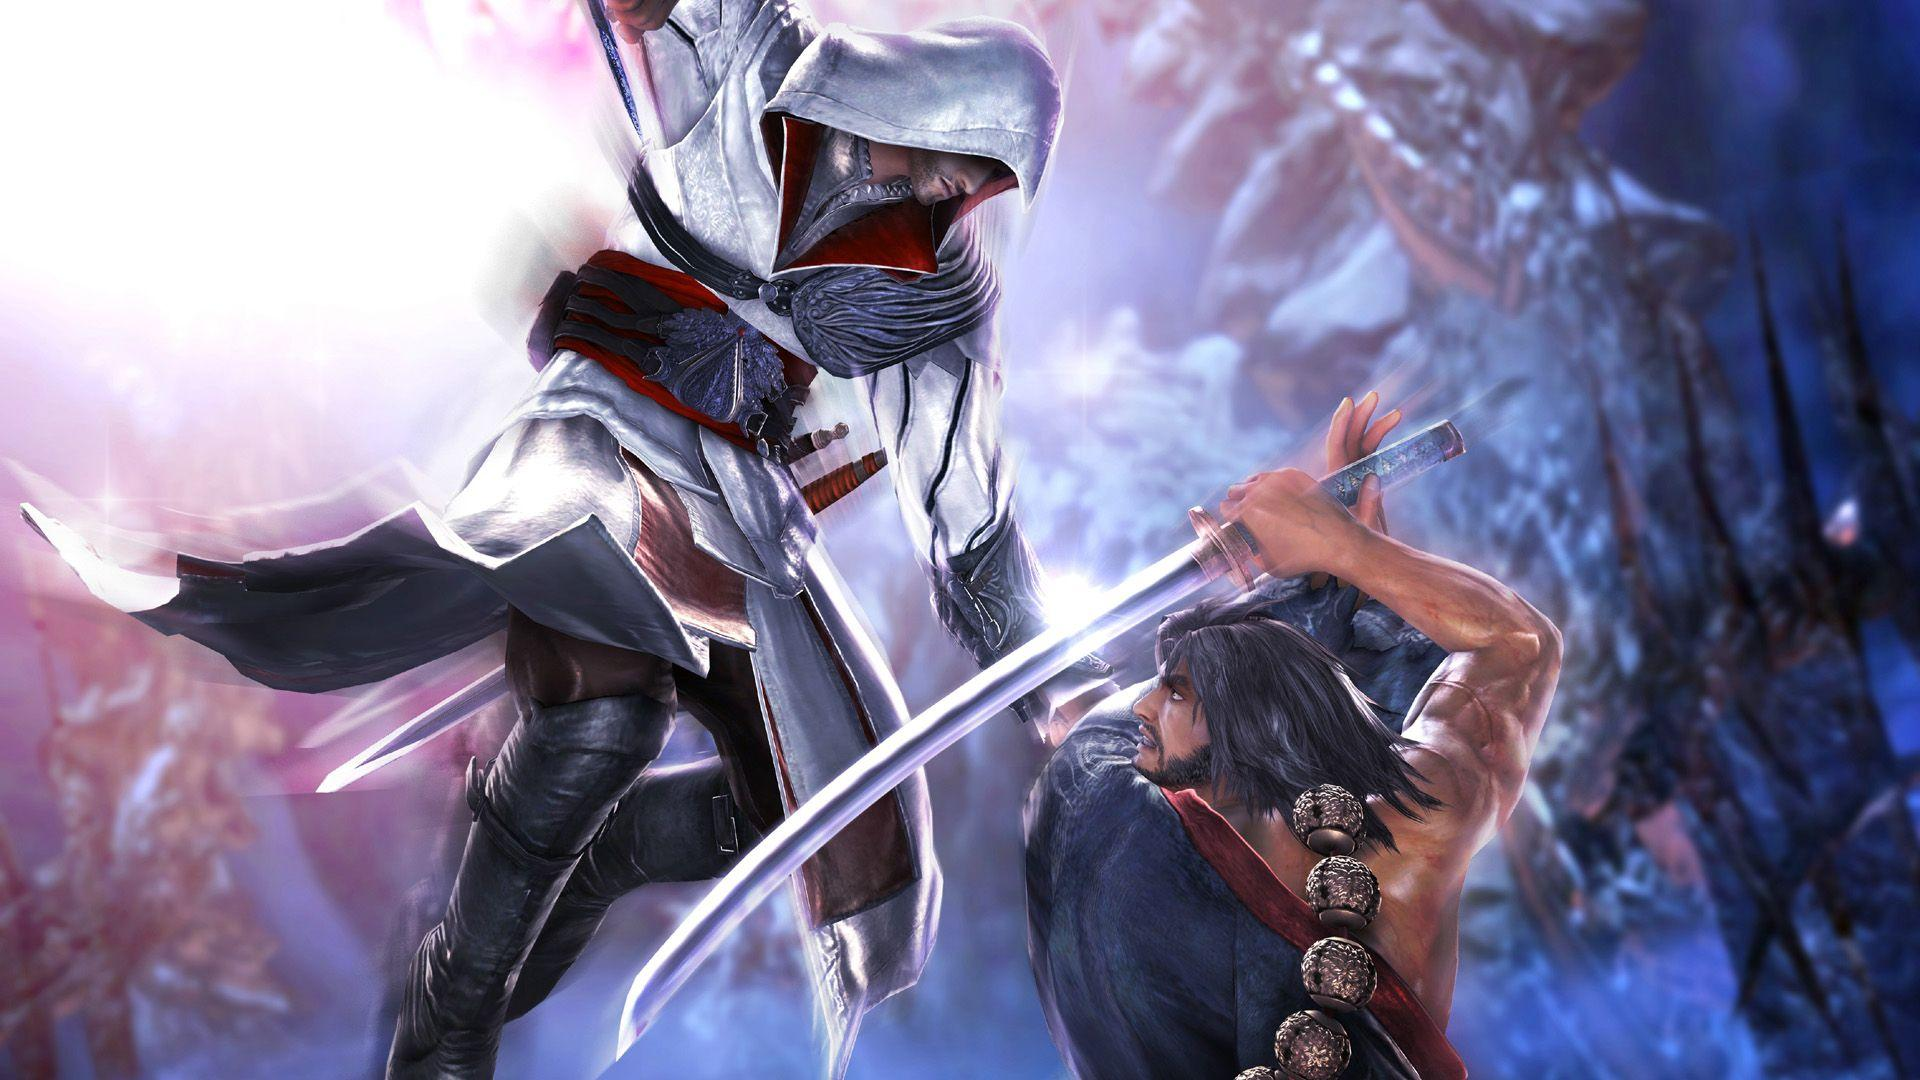 SoulCalibur V HD Wallpapers